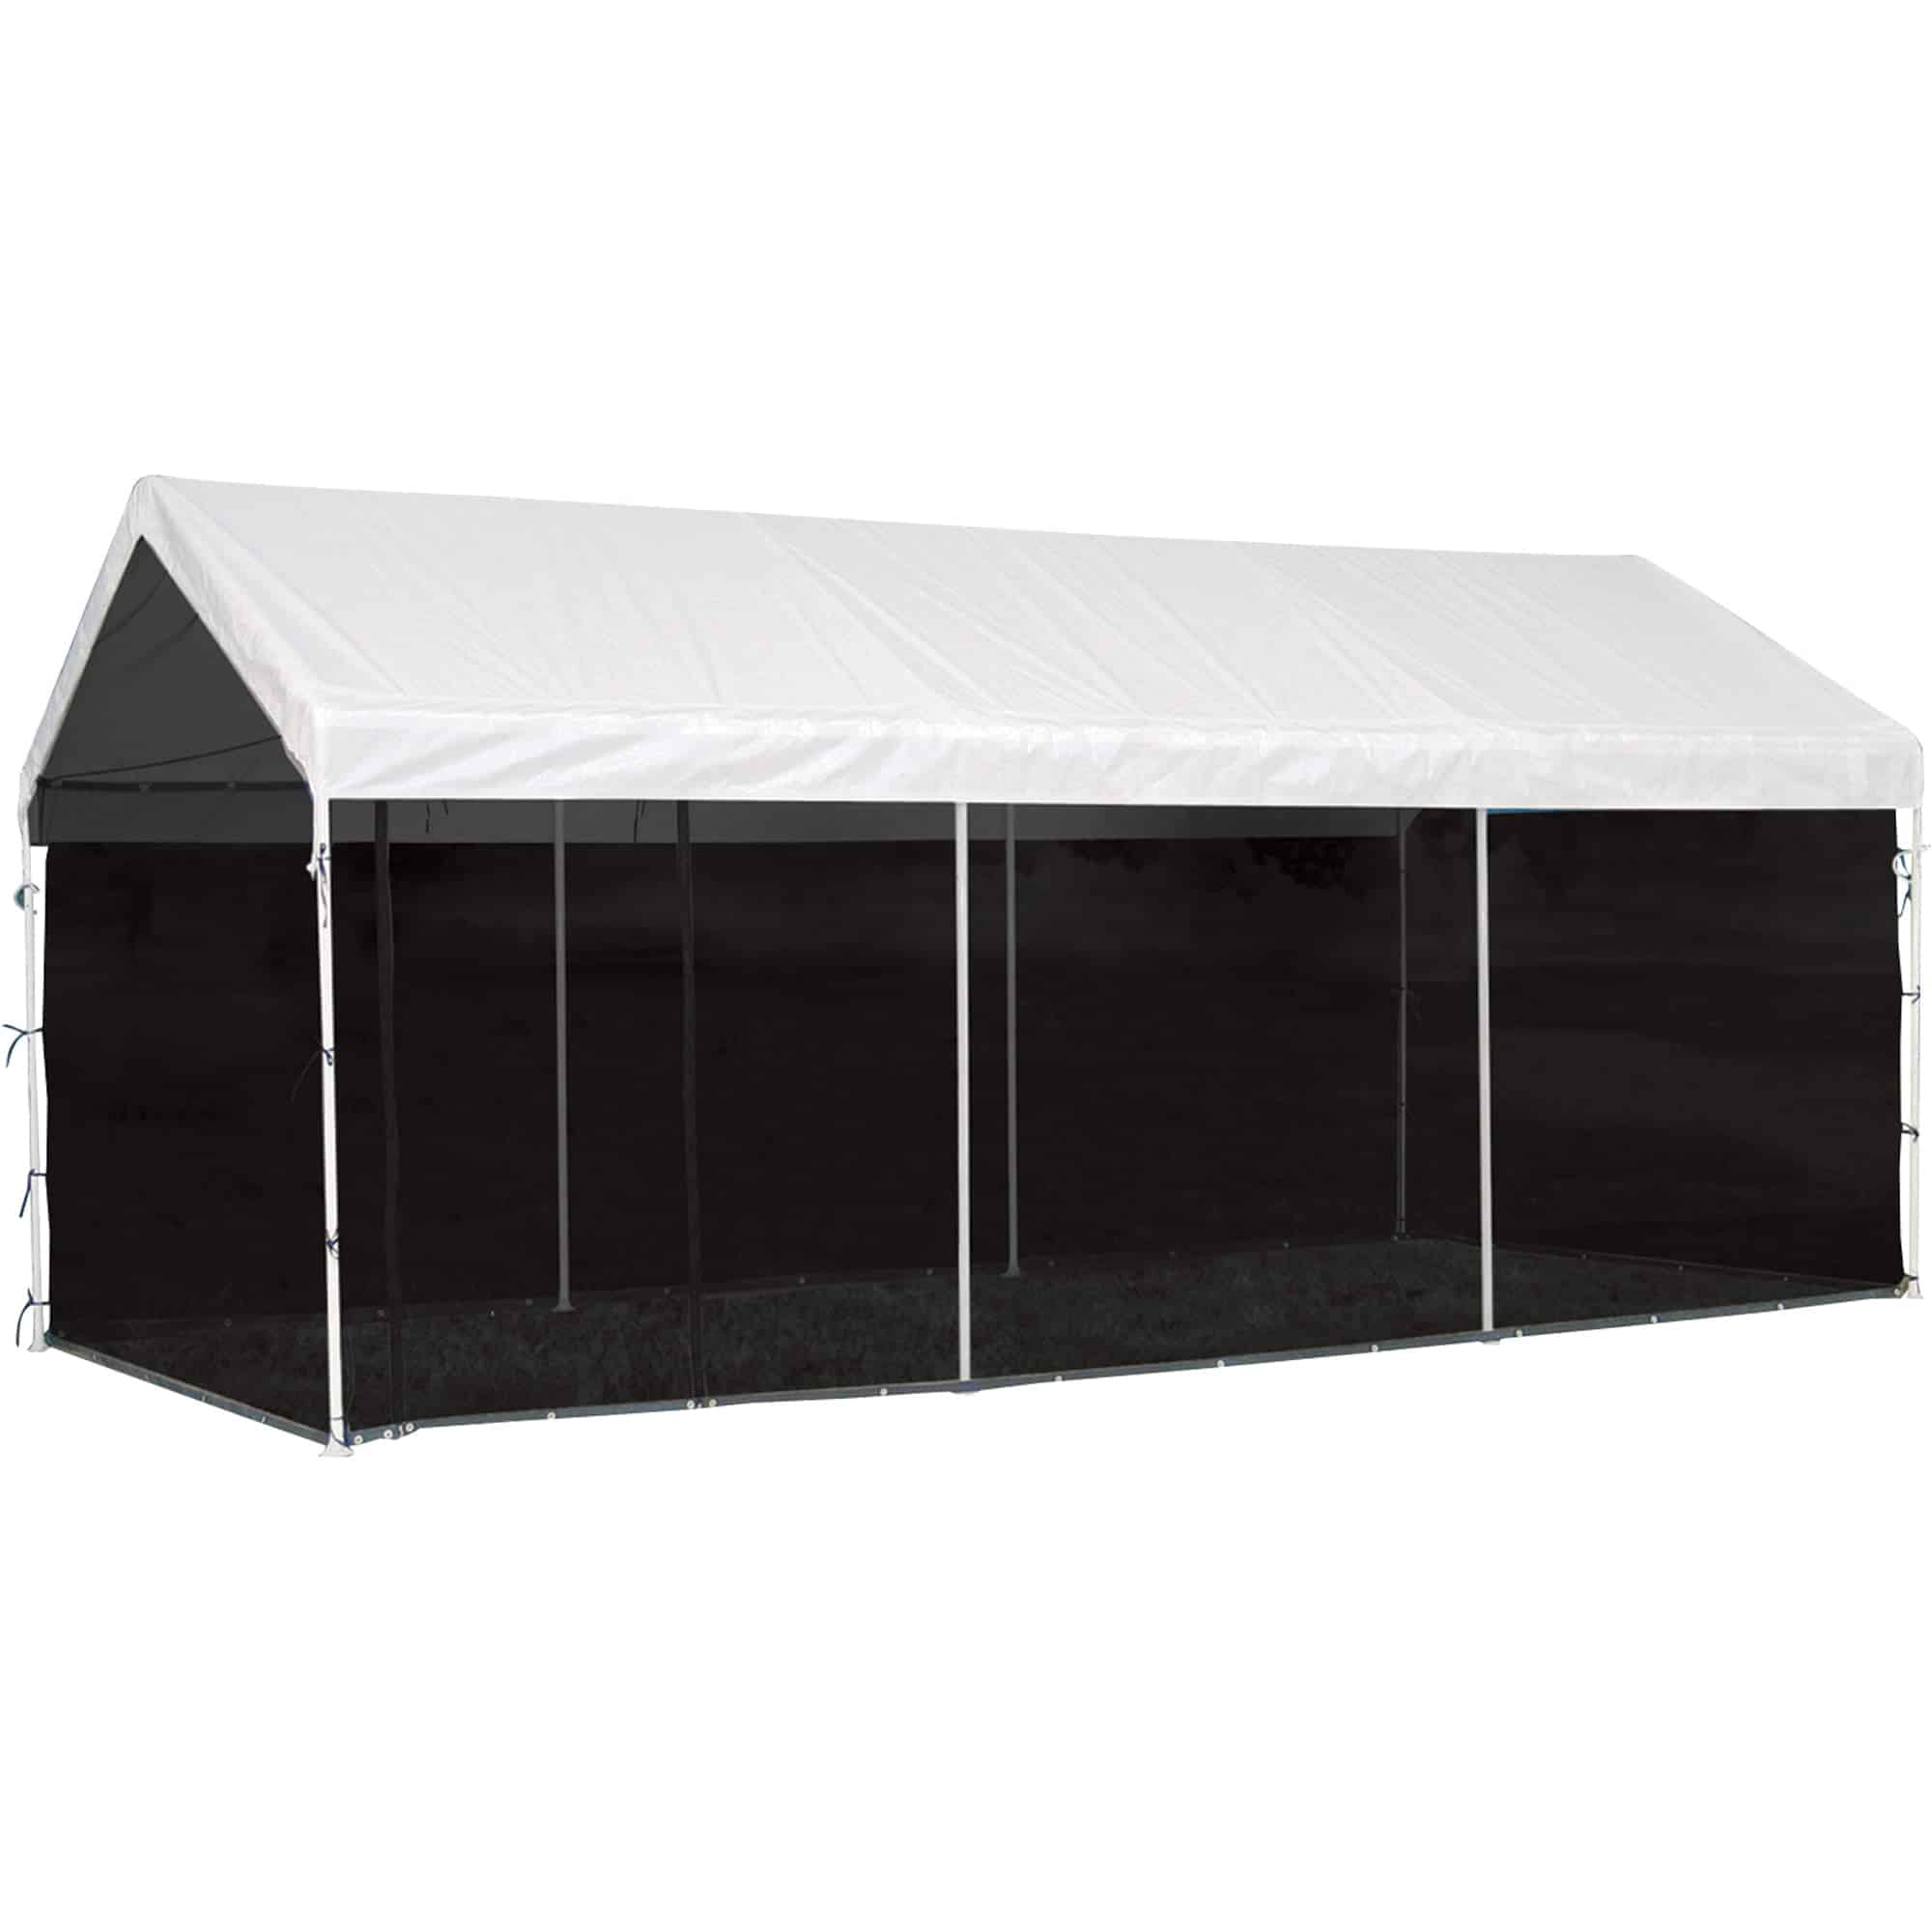 Canopy Wall - Solid 8' x 15'